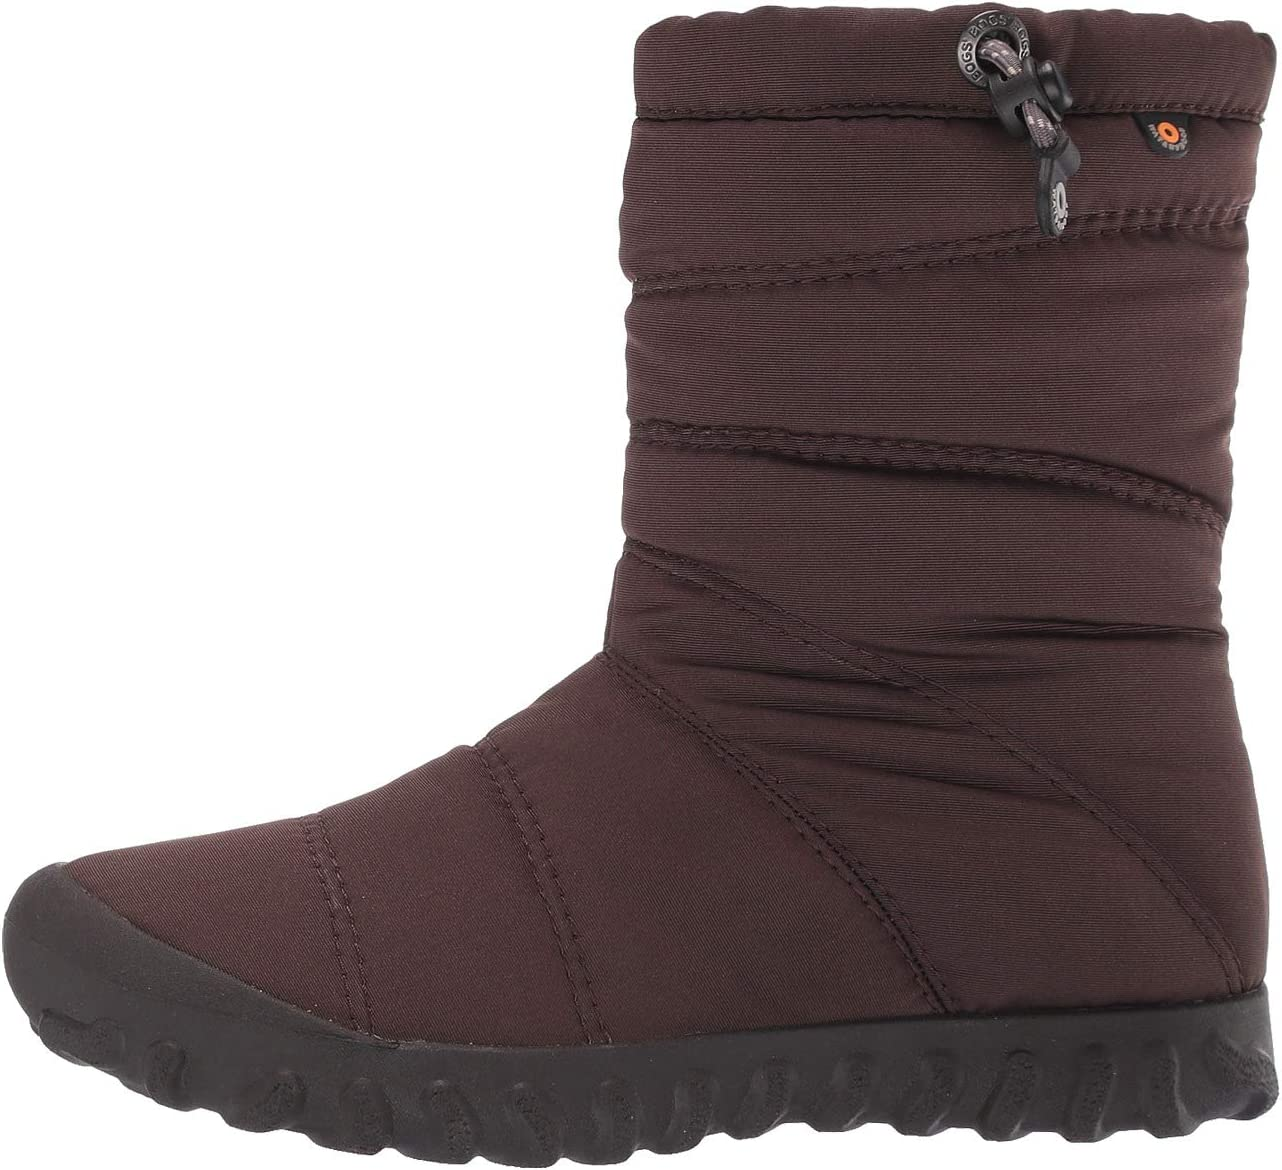 Bogs B Puffy Mid | Women's shoes | 2020 Newest